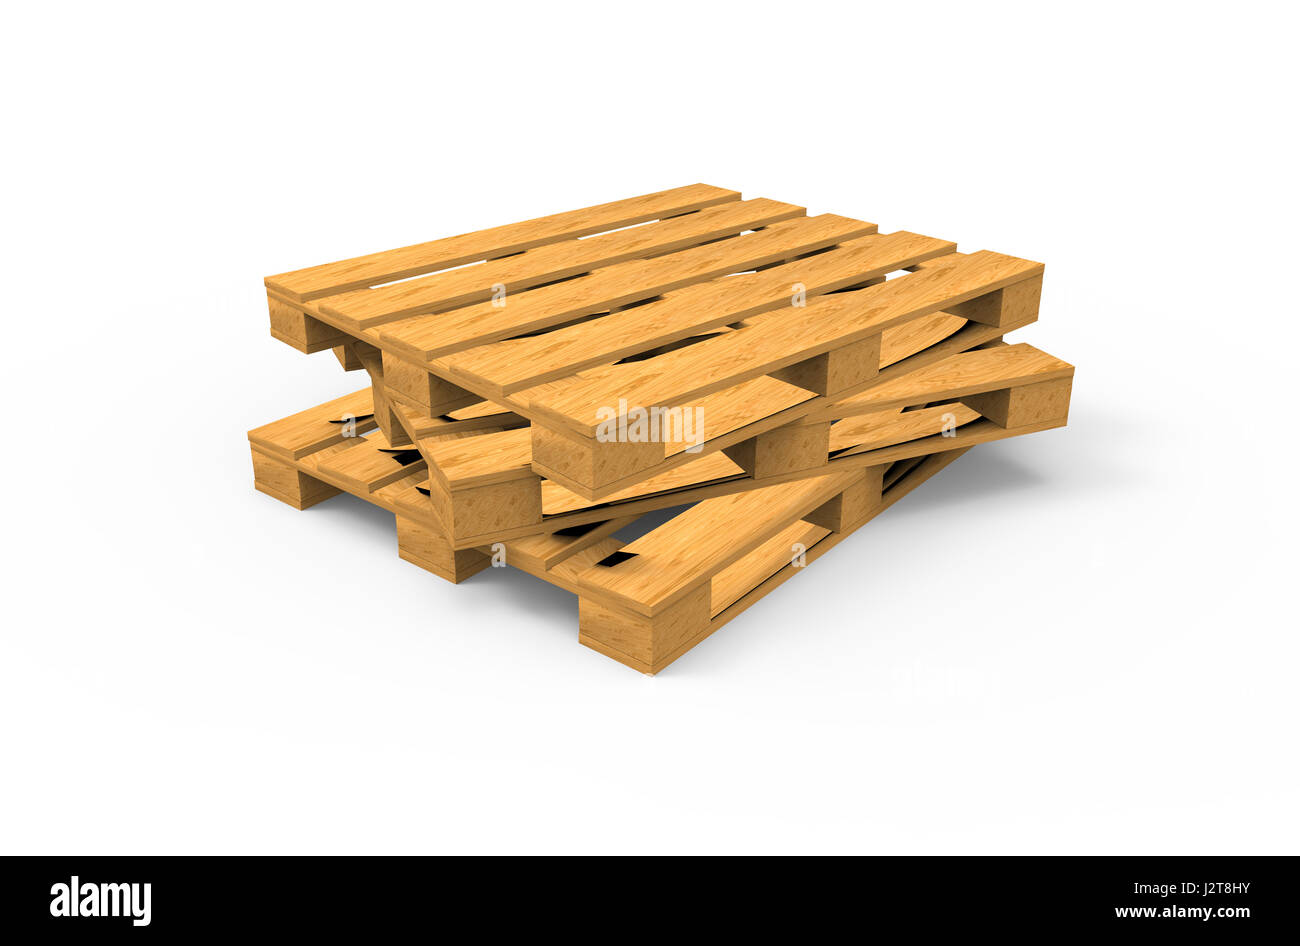 wooden pallets background. 3d wooden pallets isolated on white background :